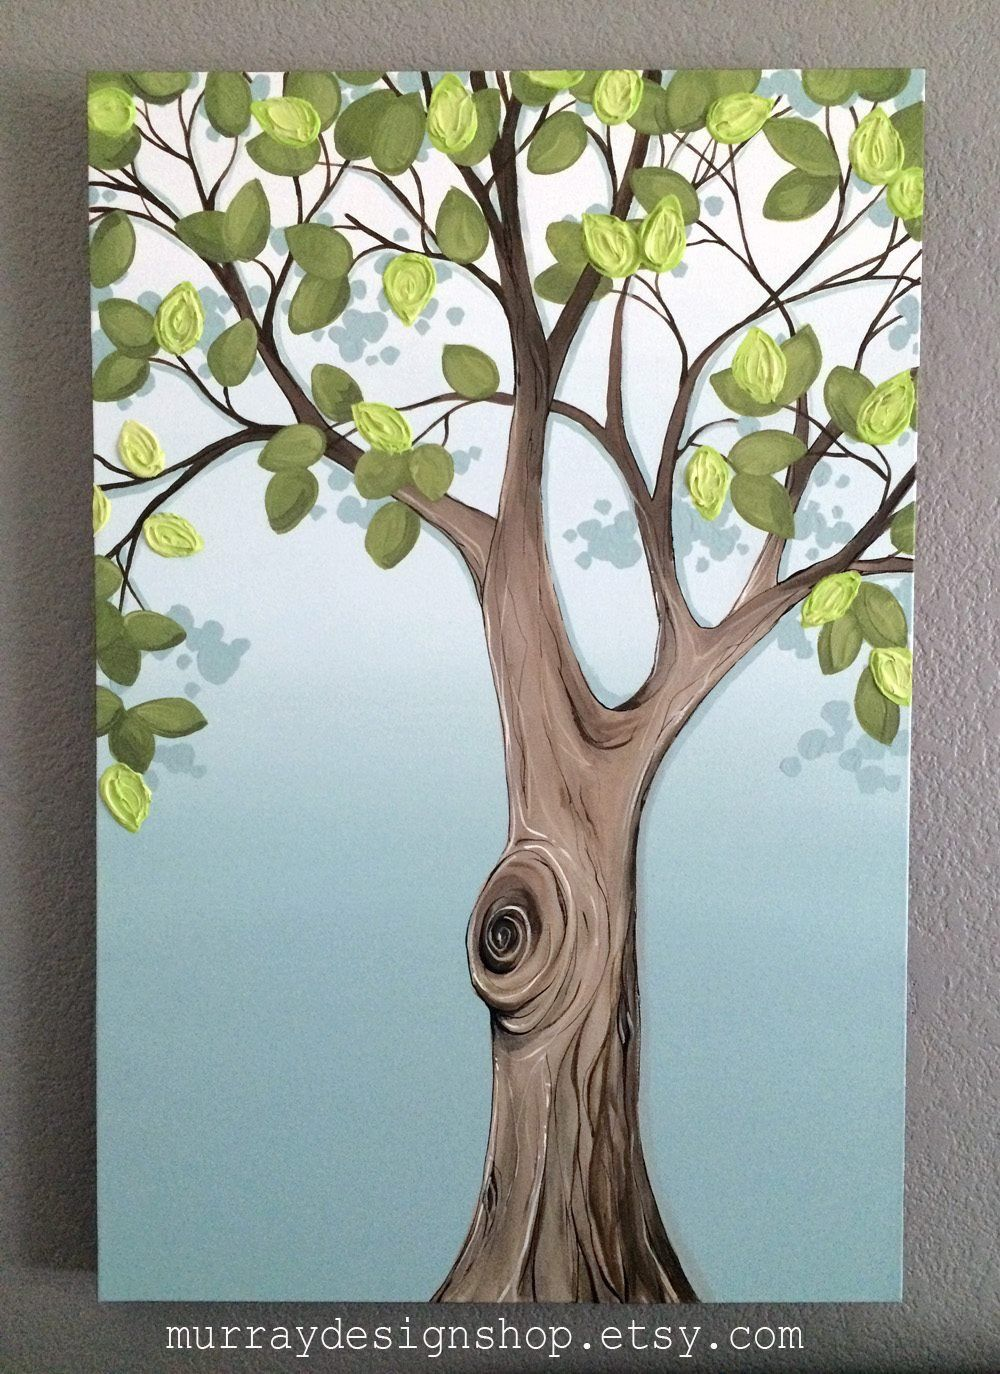 Pin By Leanna Atkinson Whitaker On Art Trees Landscapes Buildings Family Tree Painting Tree Art Tree Painting